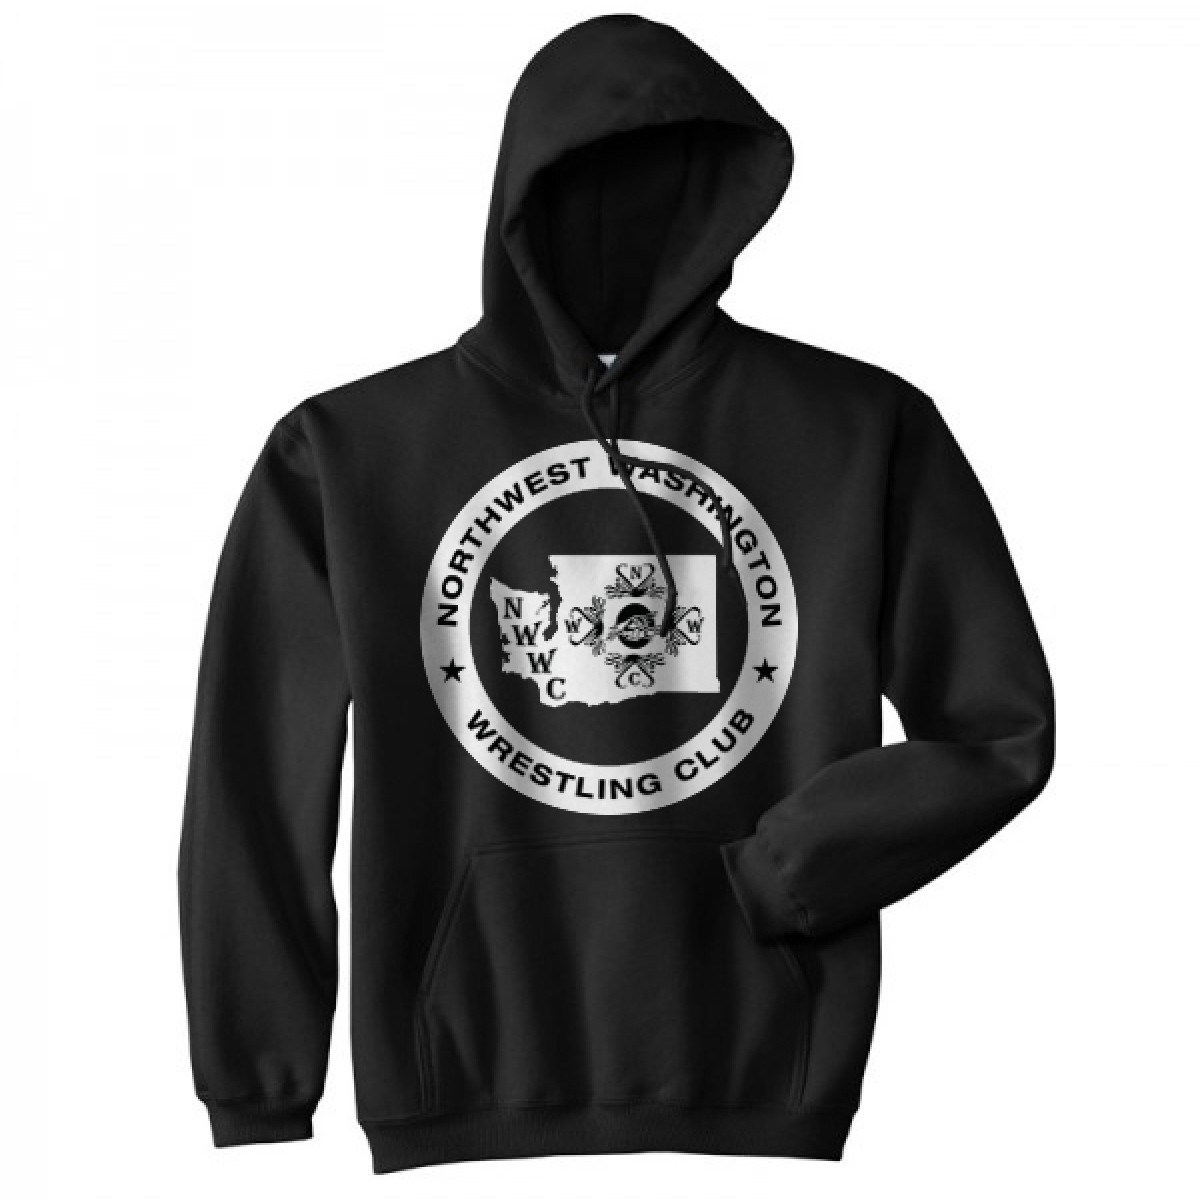 NWWC black hoodie with the logo in white.-Black-YS